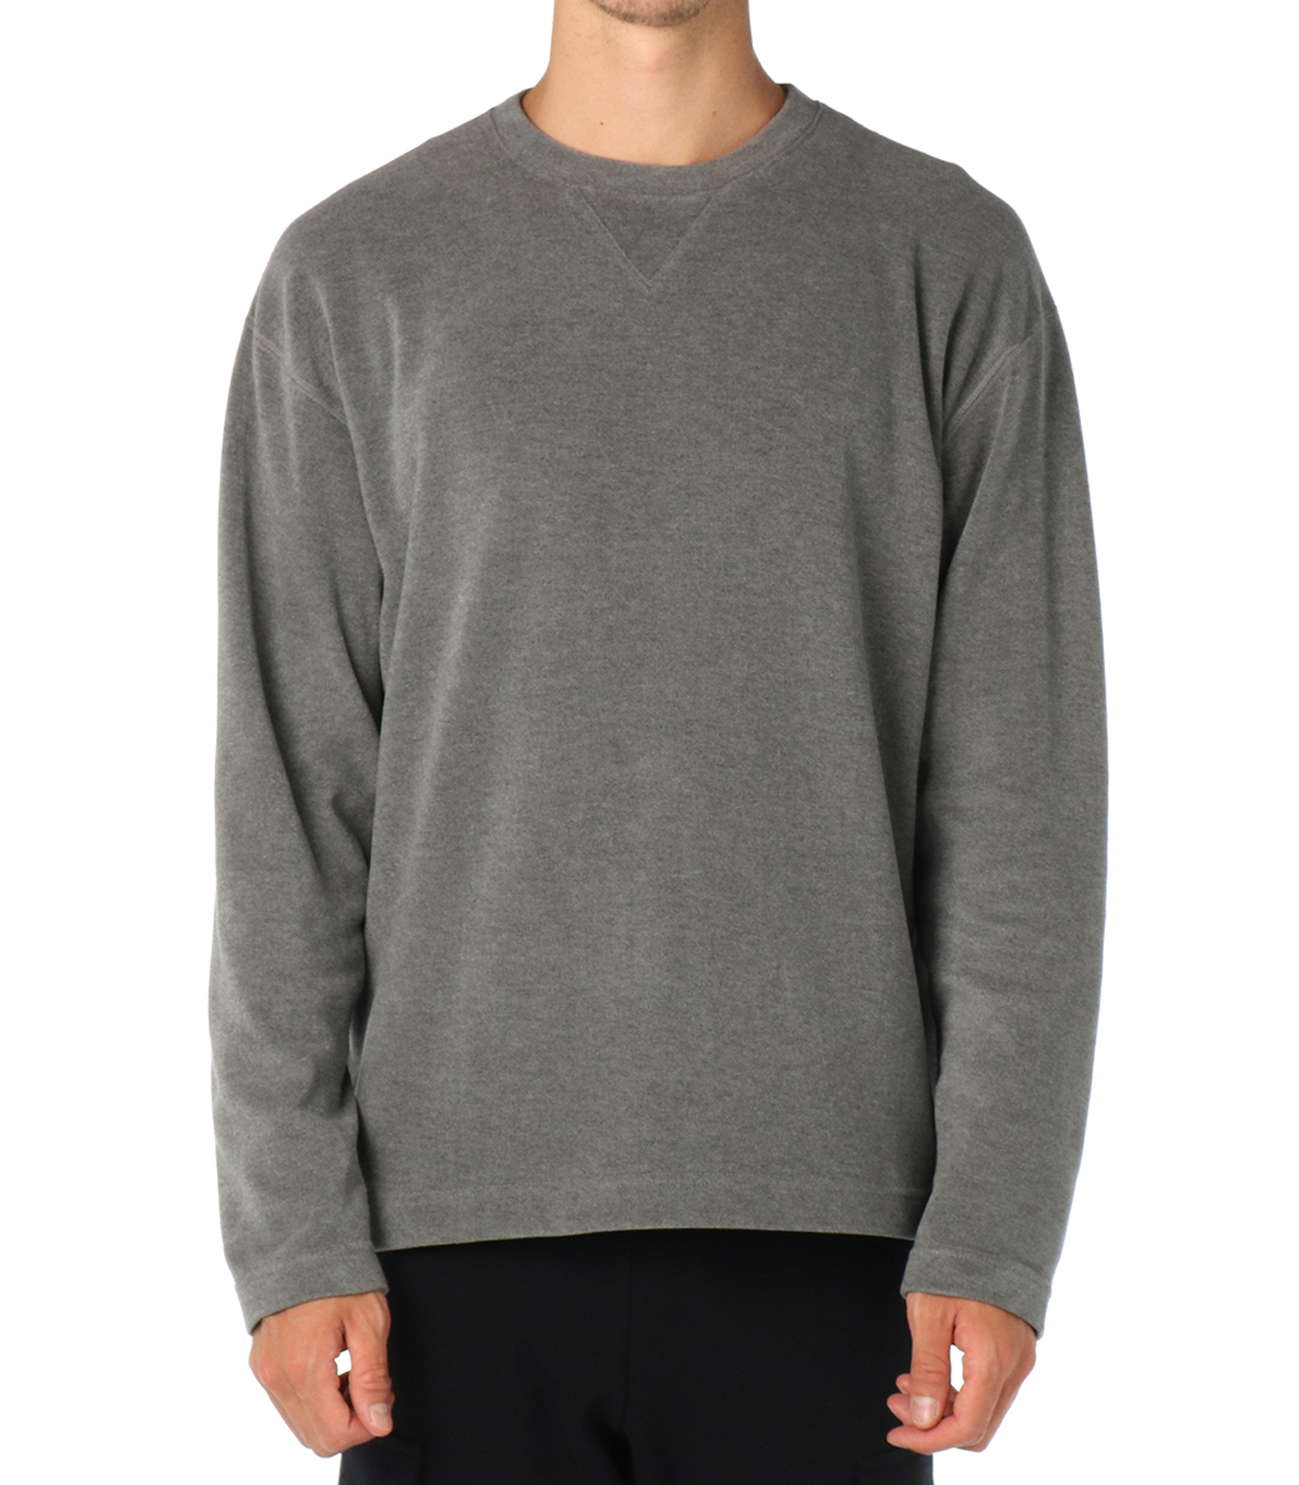 inter lock l/s crewneck po 詳細画像 camel 2